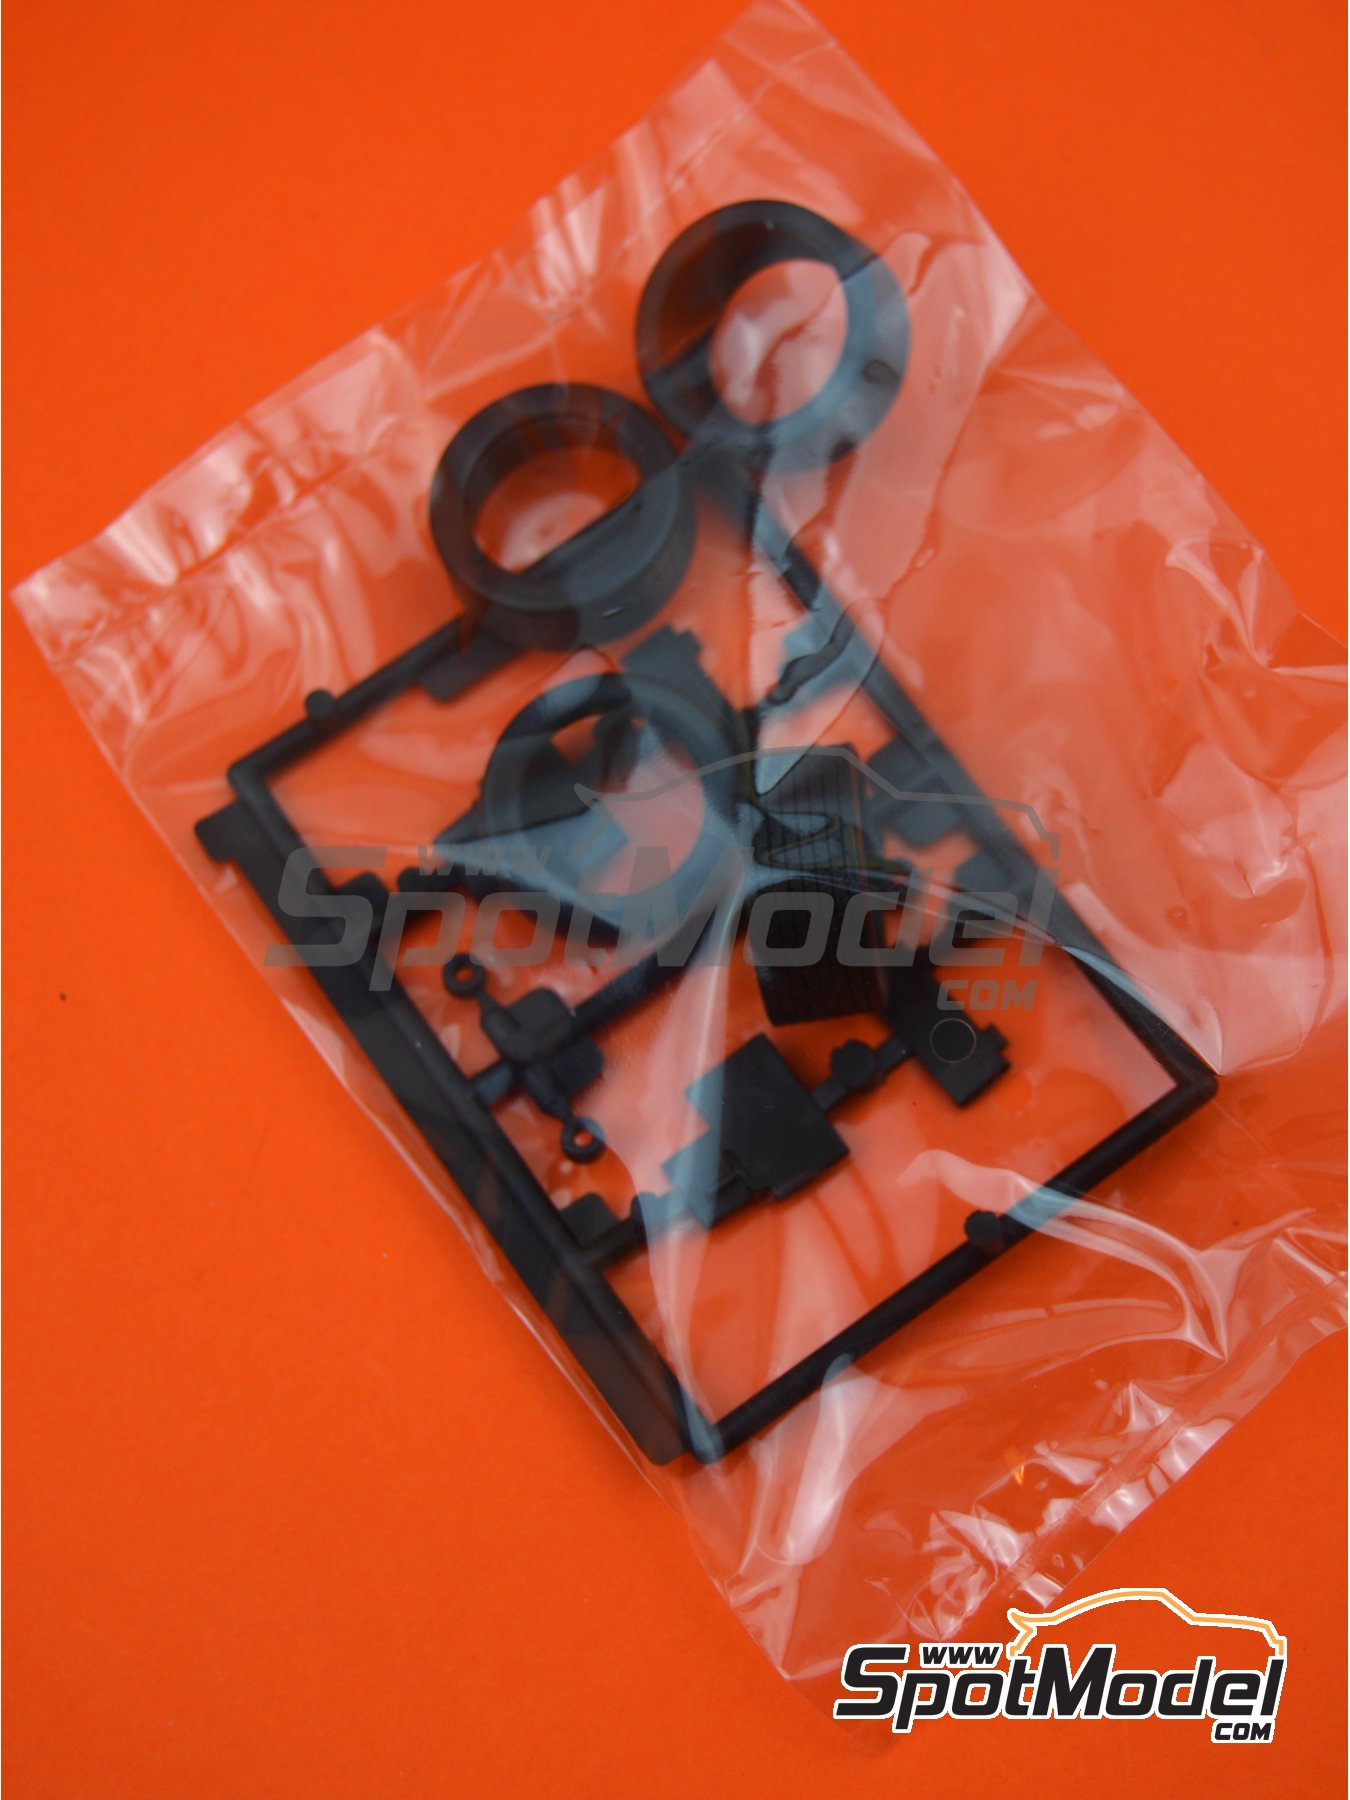 Opel Manta 400 Group B: Sprue I | Spare part in 1/24 scale manufactured by Belkits (ref. BEL008-SPRUE-I) image